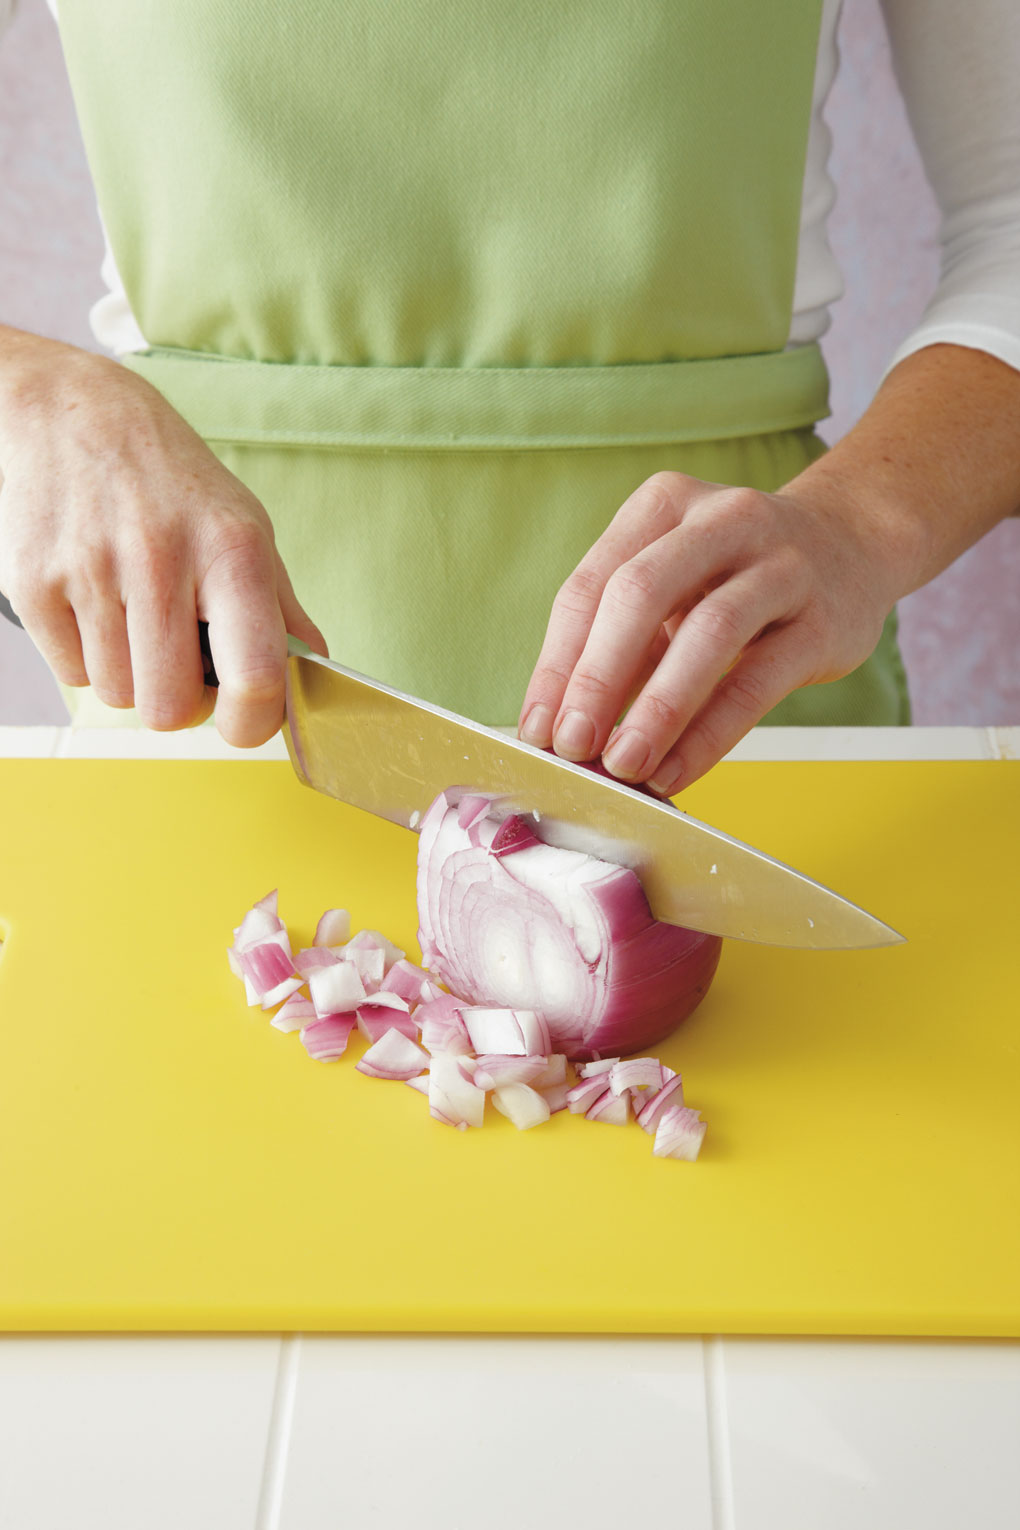 Step 4: Produce Chopped Pieces